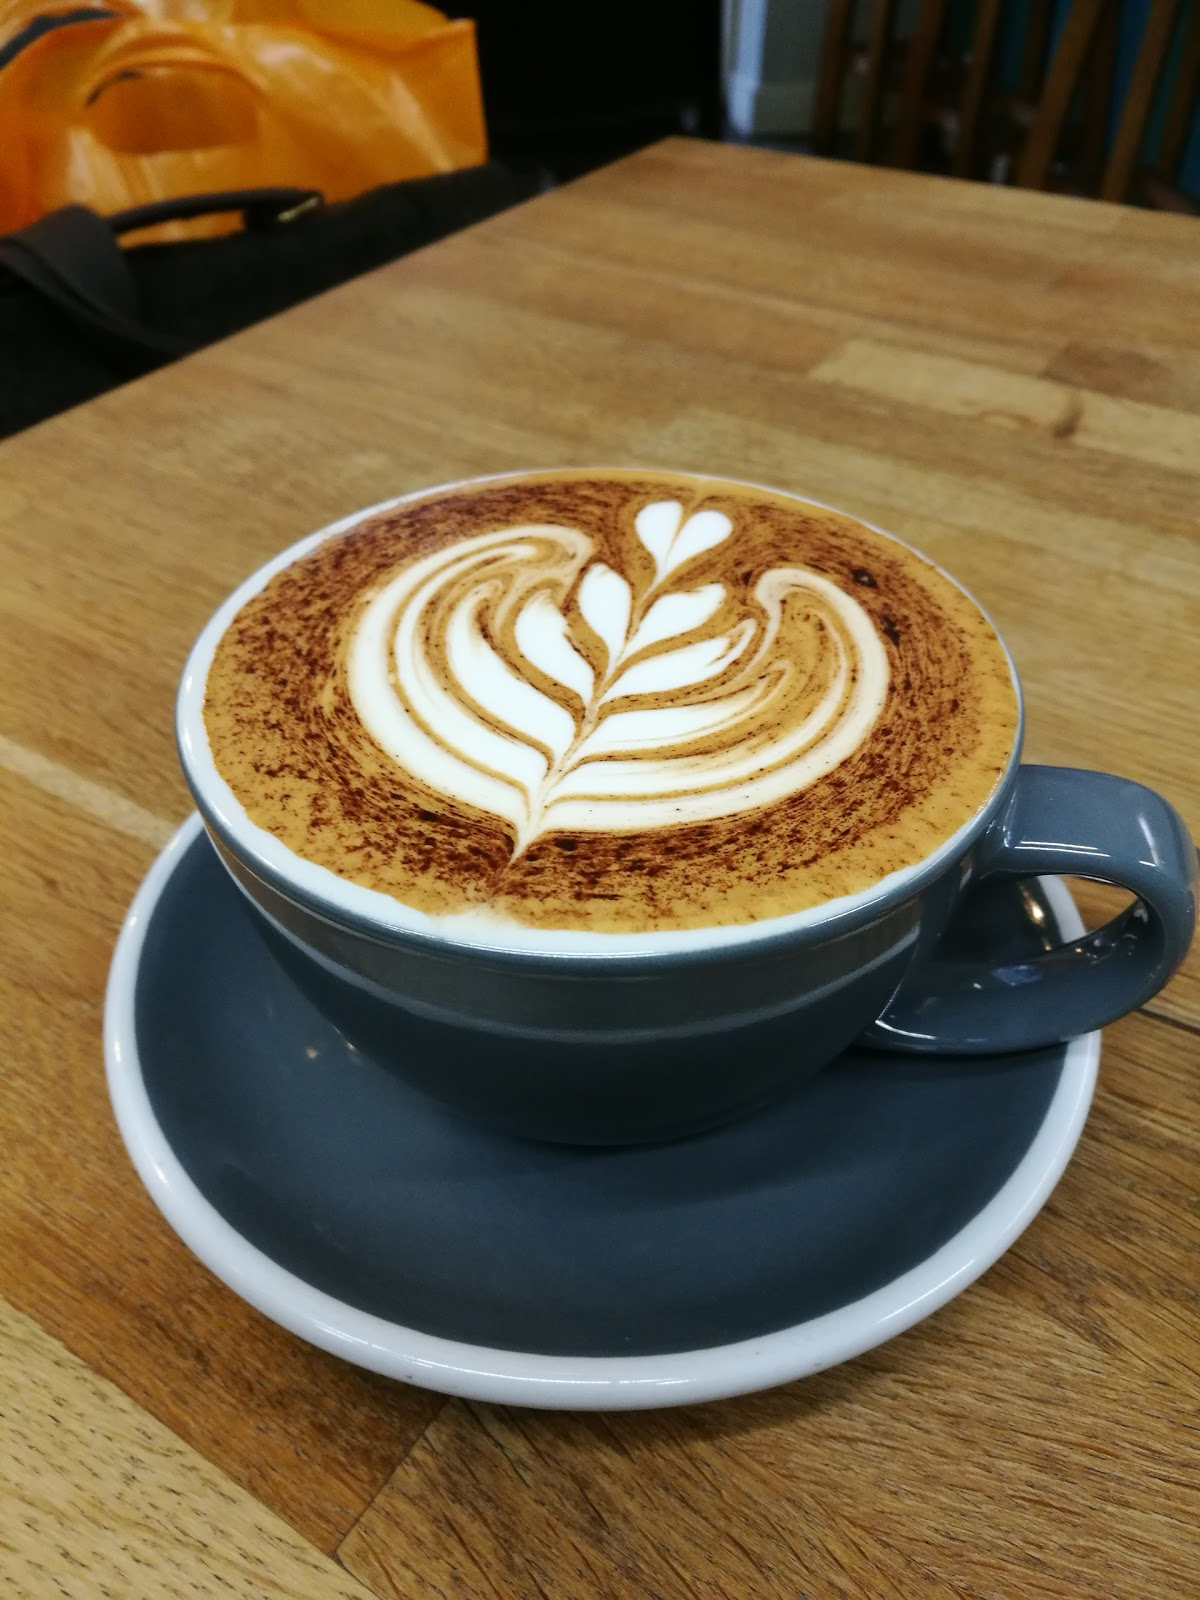 Castello Coffee Co.: A Work-Friendly Place in Edinburgh